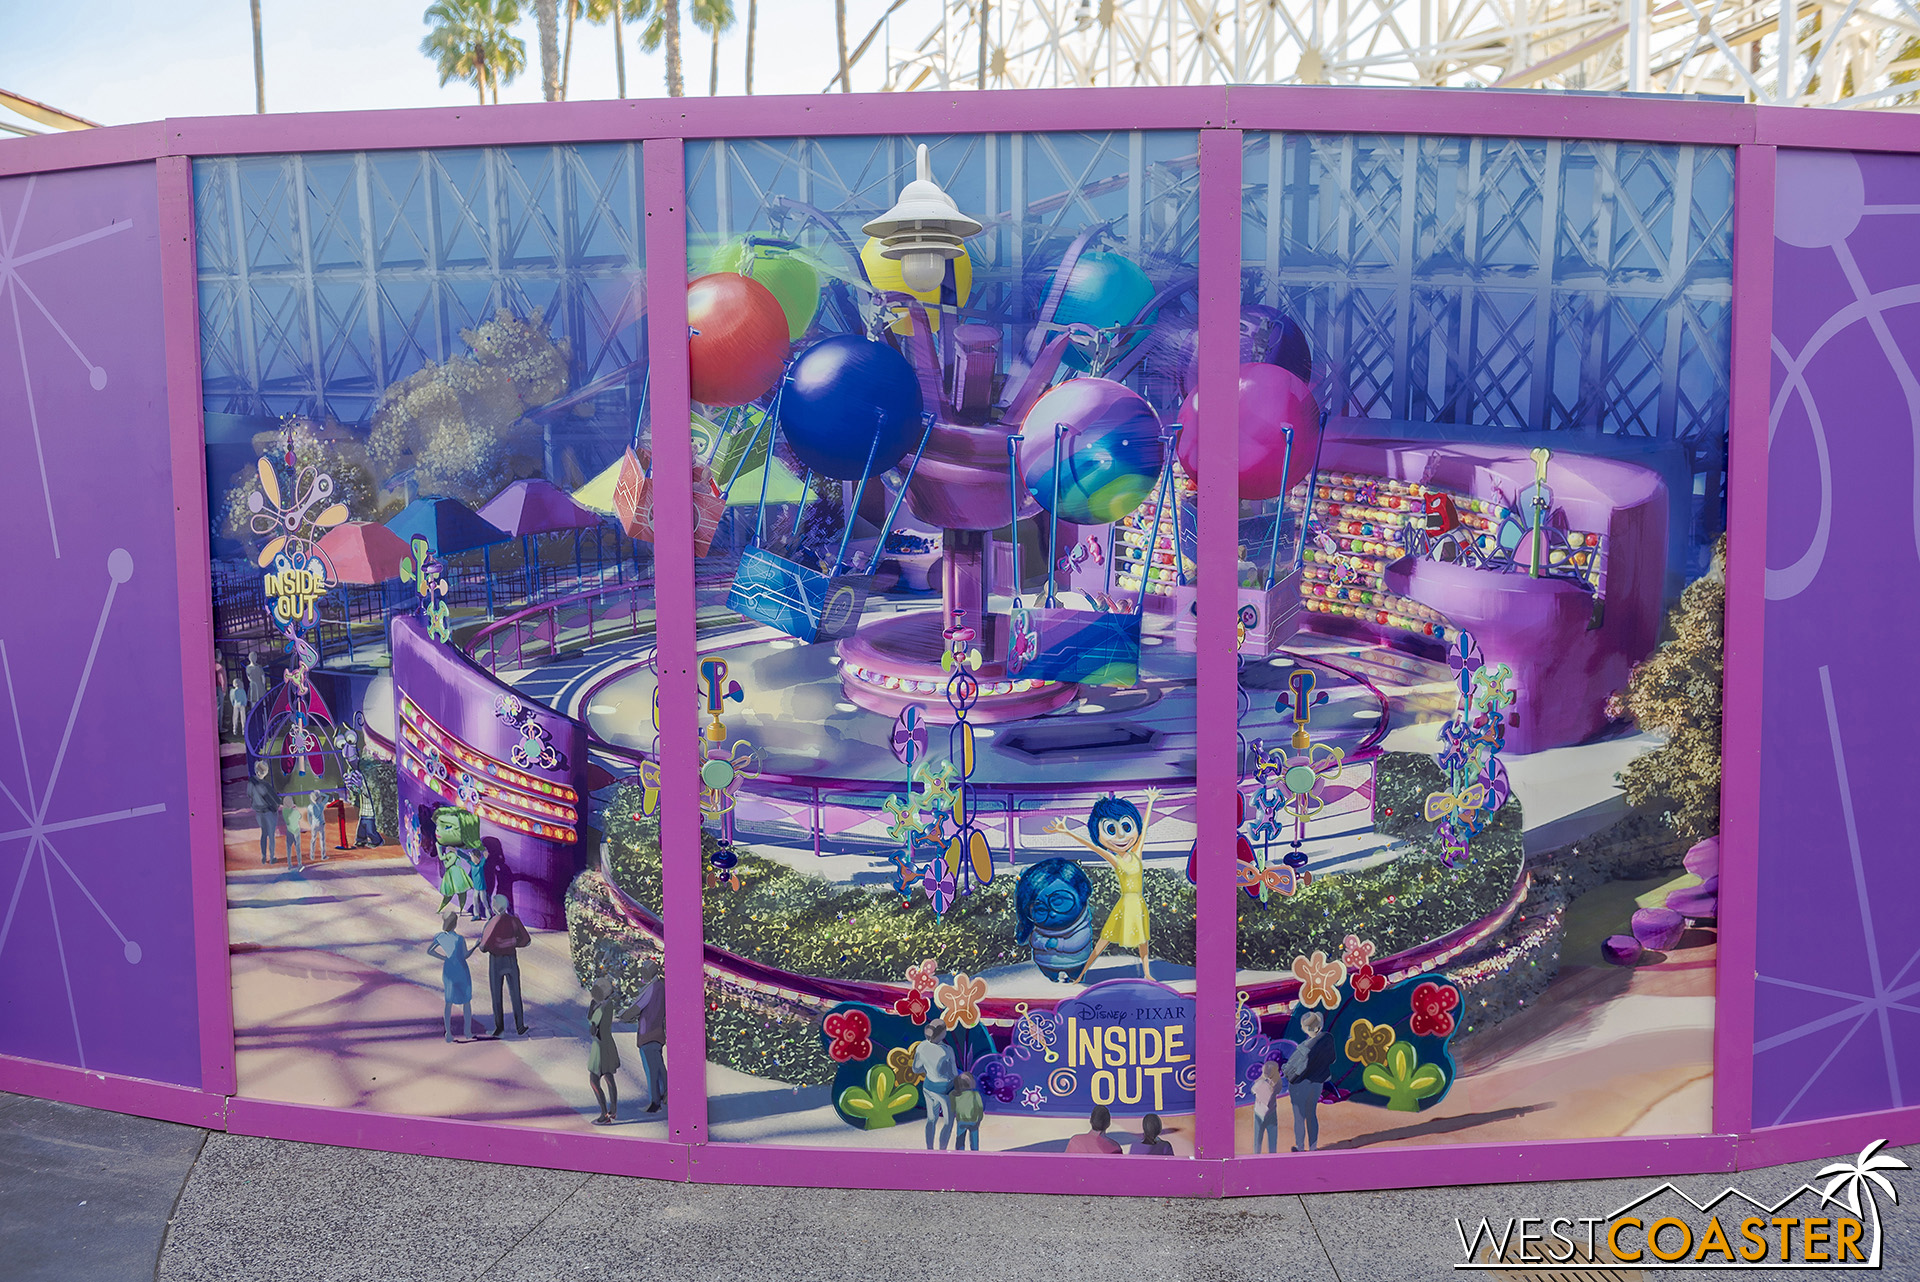 They've also added an enlargement of the rendering of the ride.